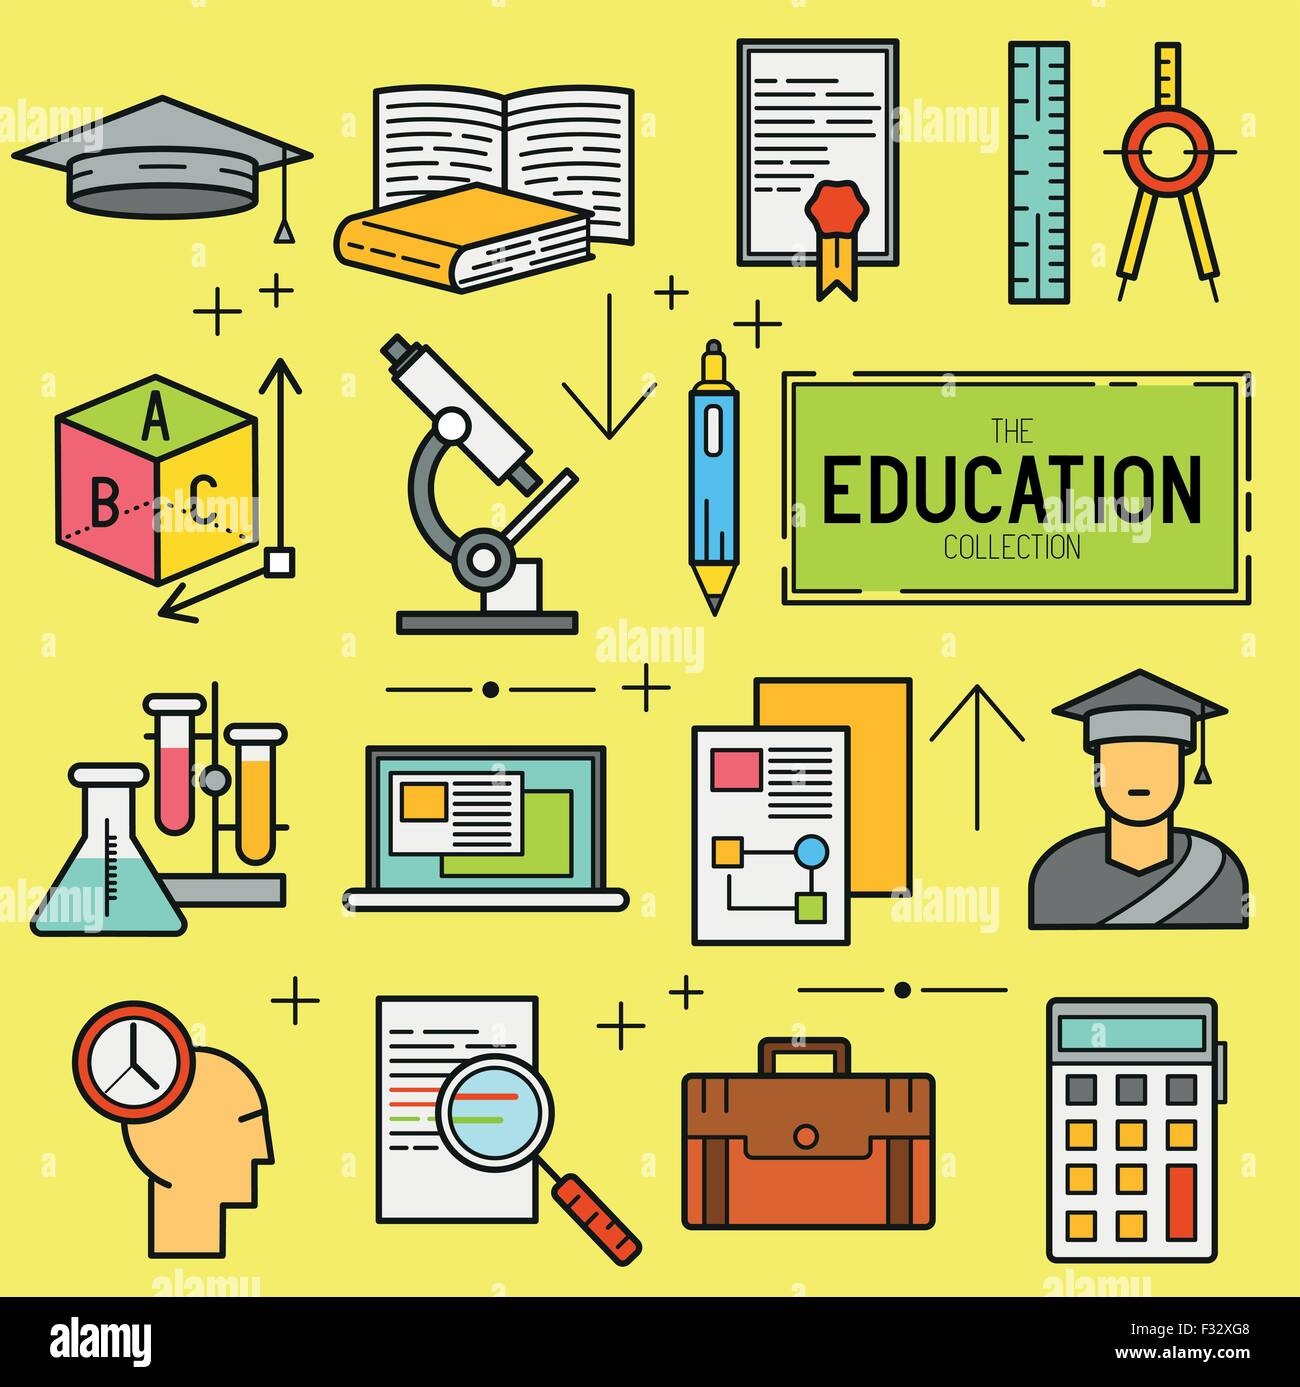 Education Vector Icon Set. a collection of study and research symbols including objects and tools. Vector illustration. Stock Vector